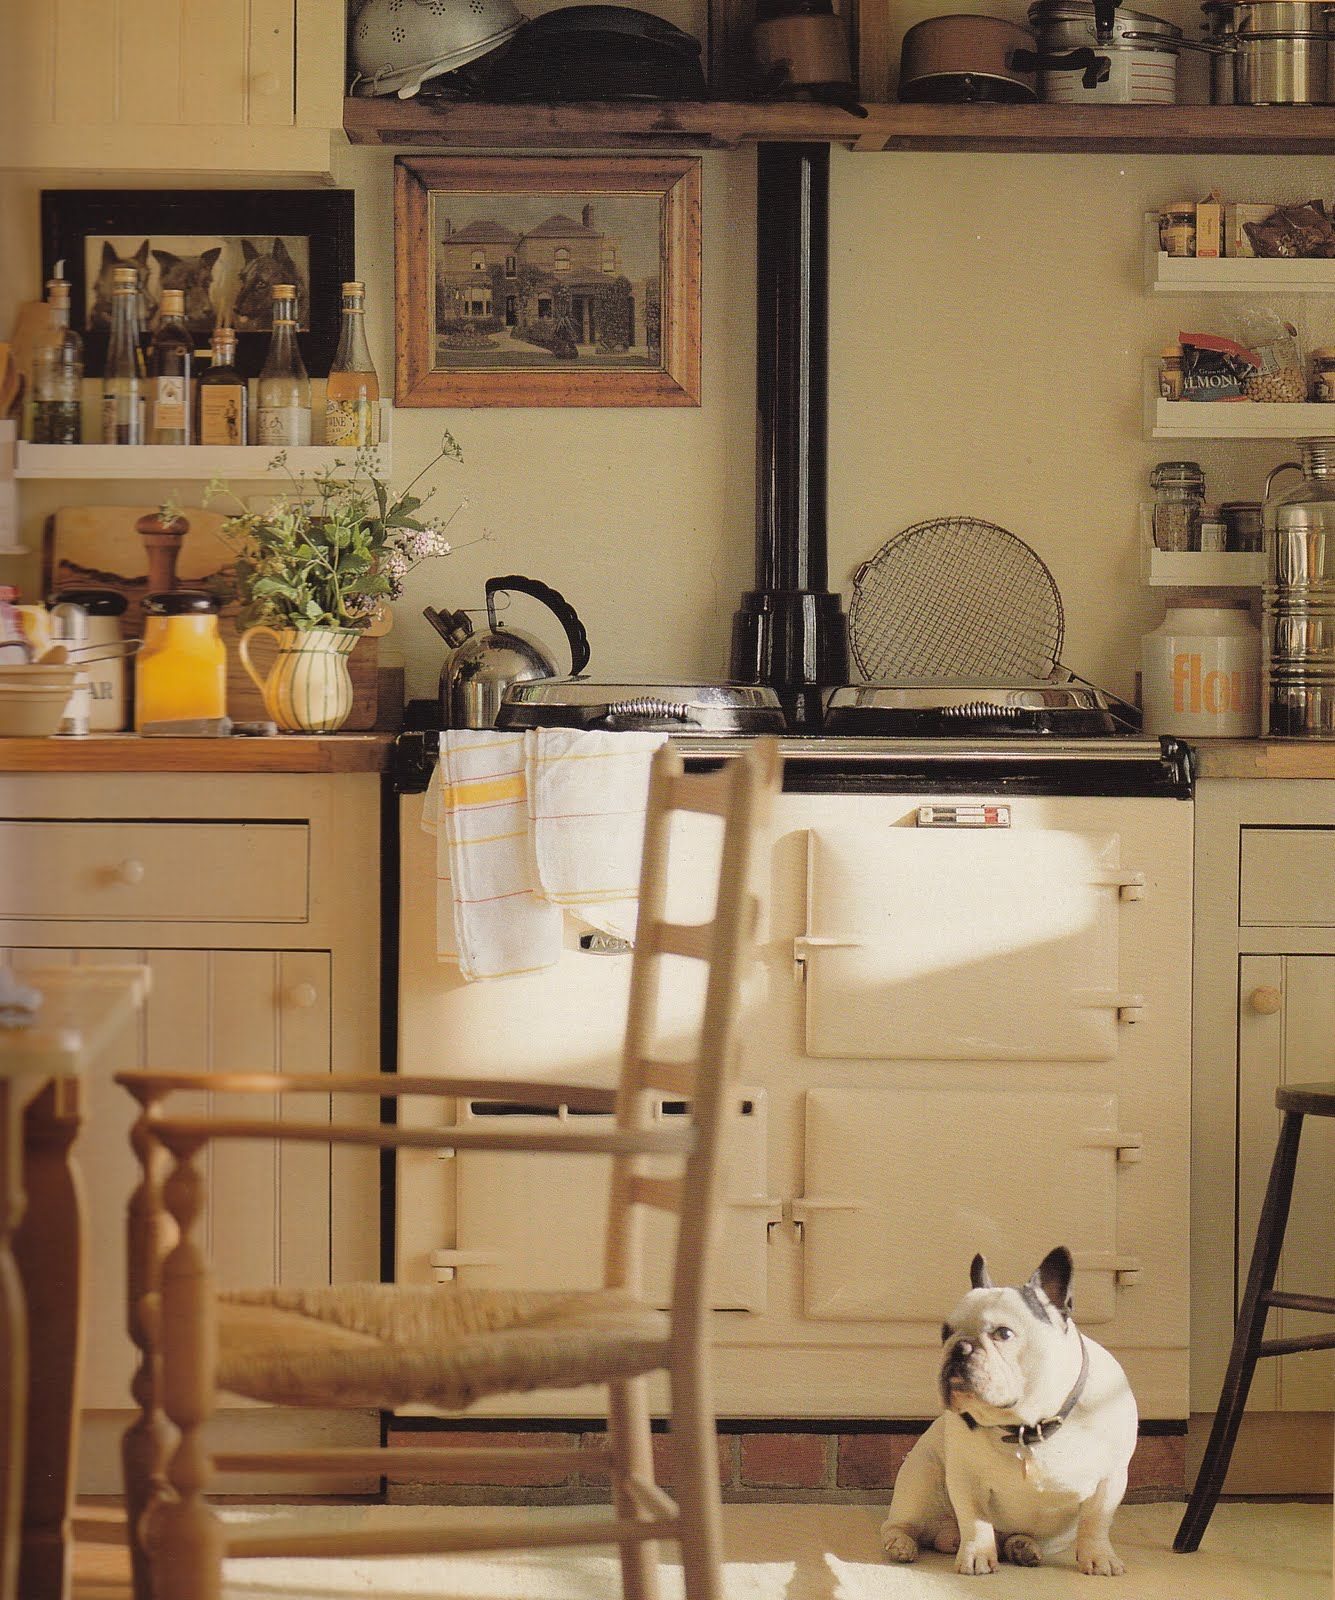 English Cottage Interiors English Cottages And A French Bulldog Fabulous Country Rooms